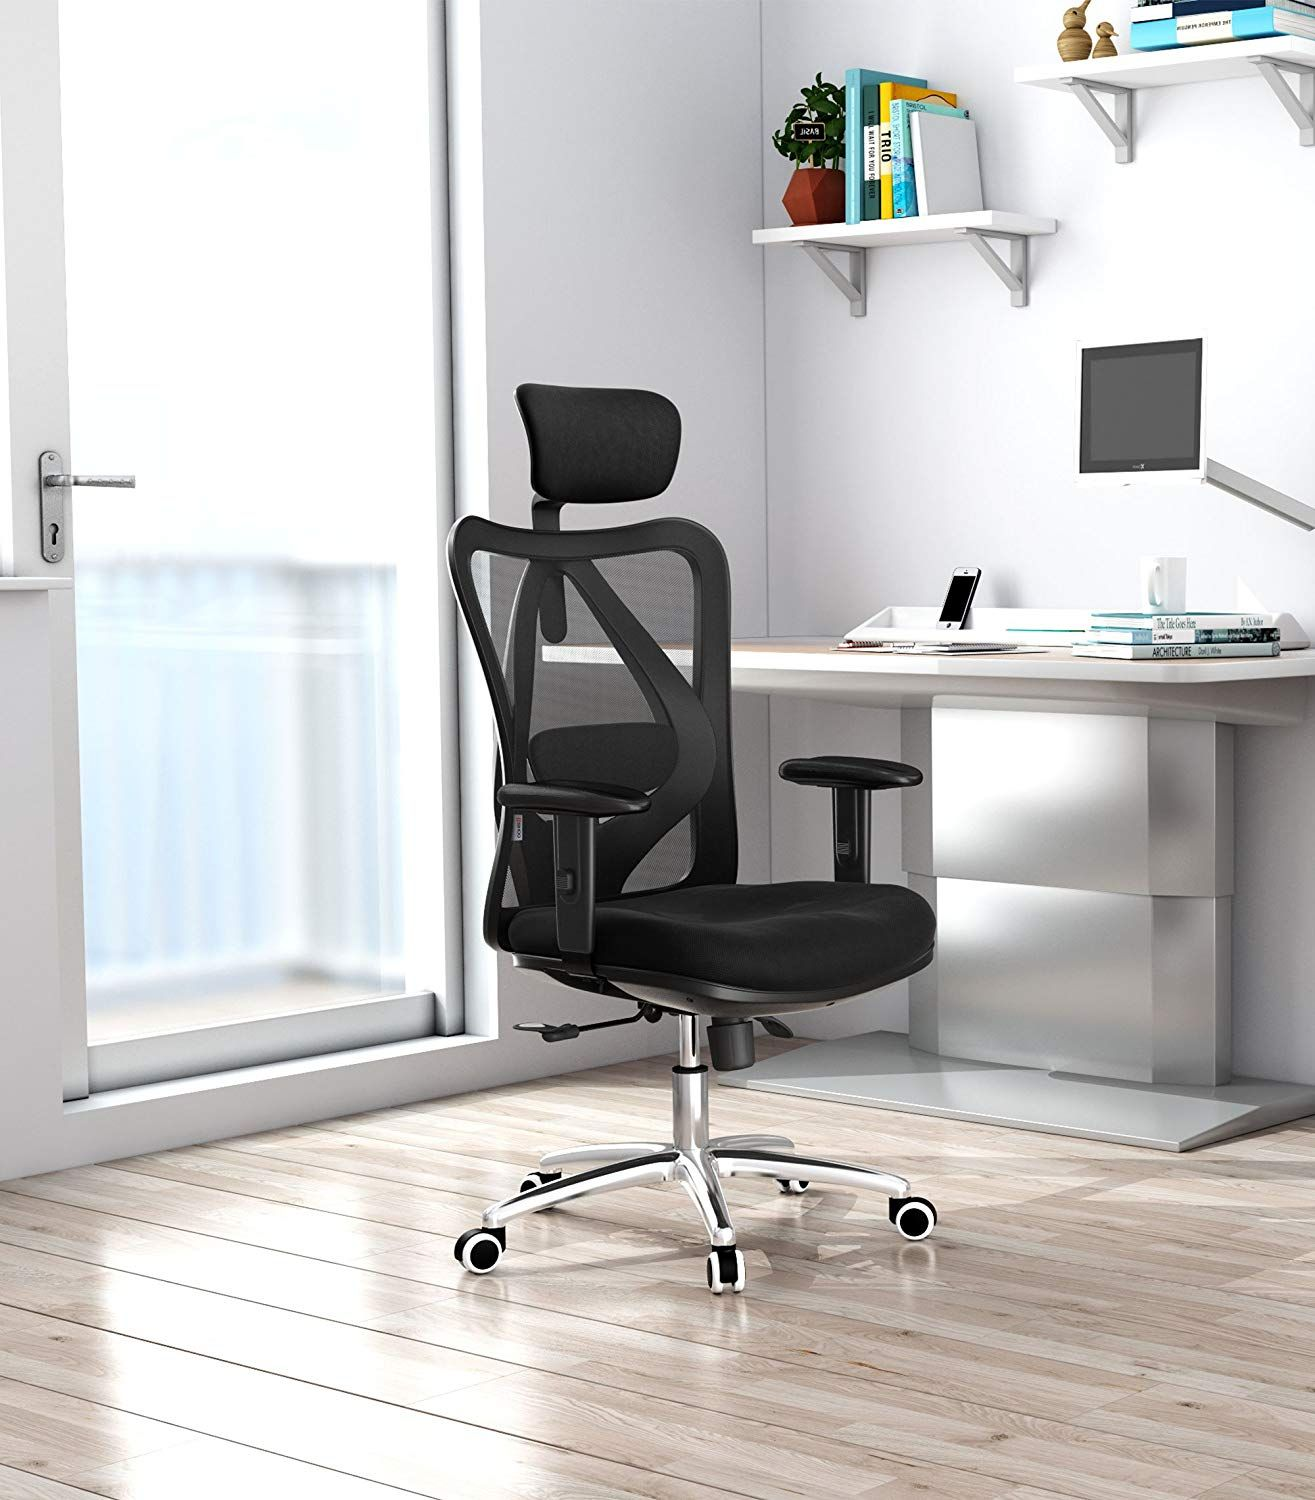 Sensational The Universal Fit Computer Desk Chair For Lower Back Pain Evergreenethics Interior Chair Design Evergreenethicsorg